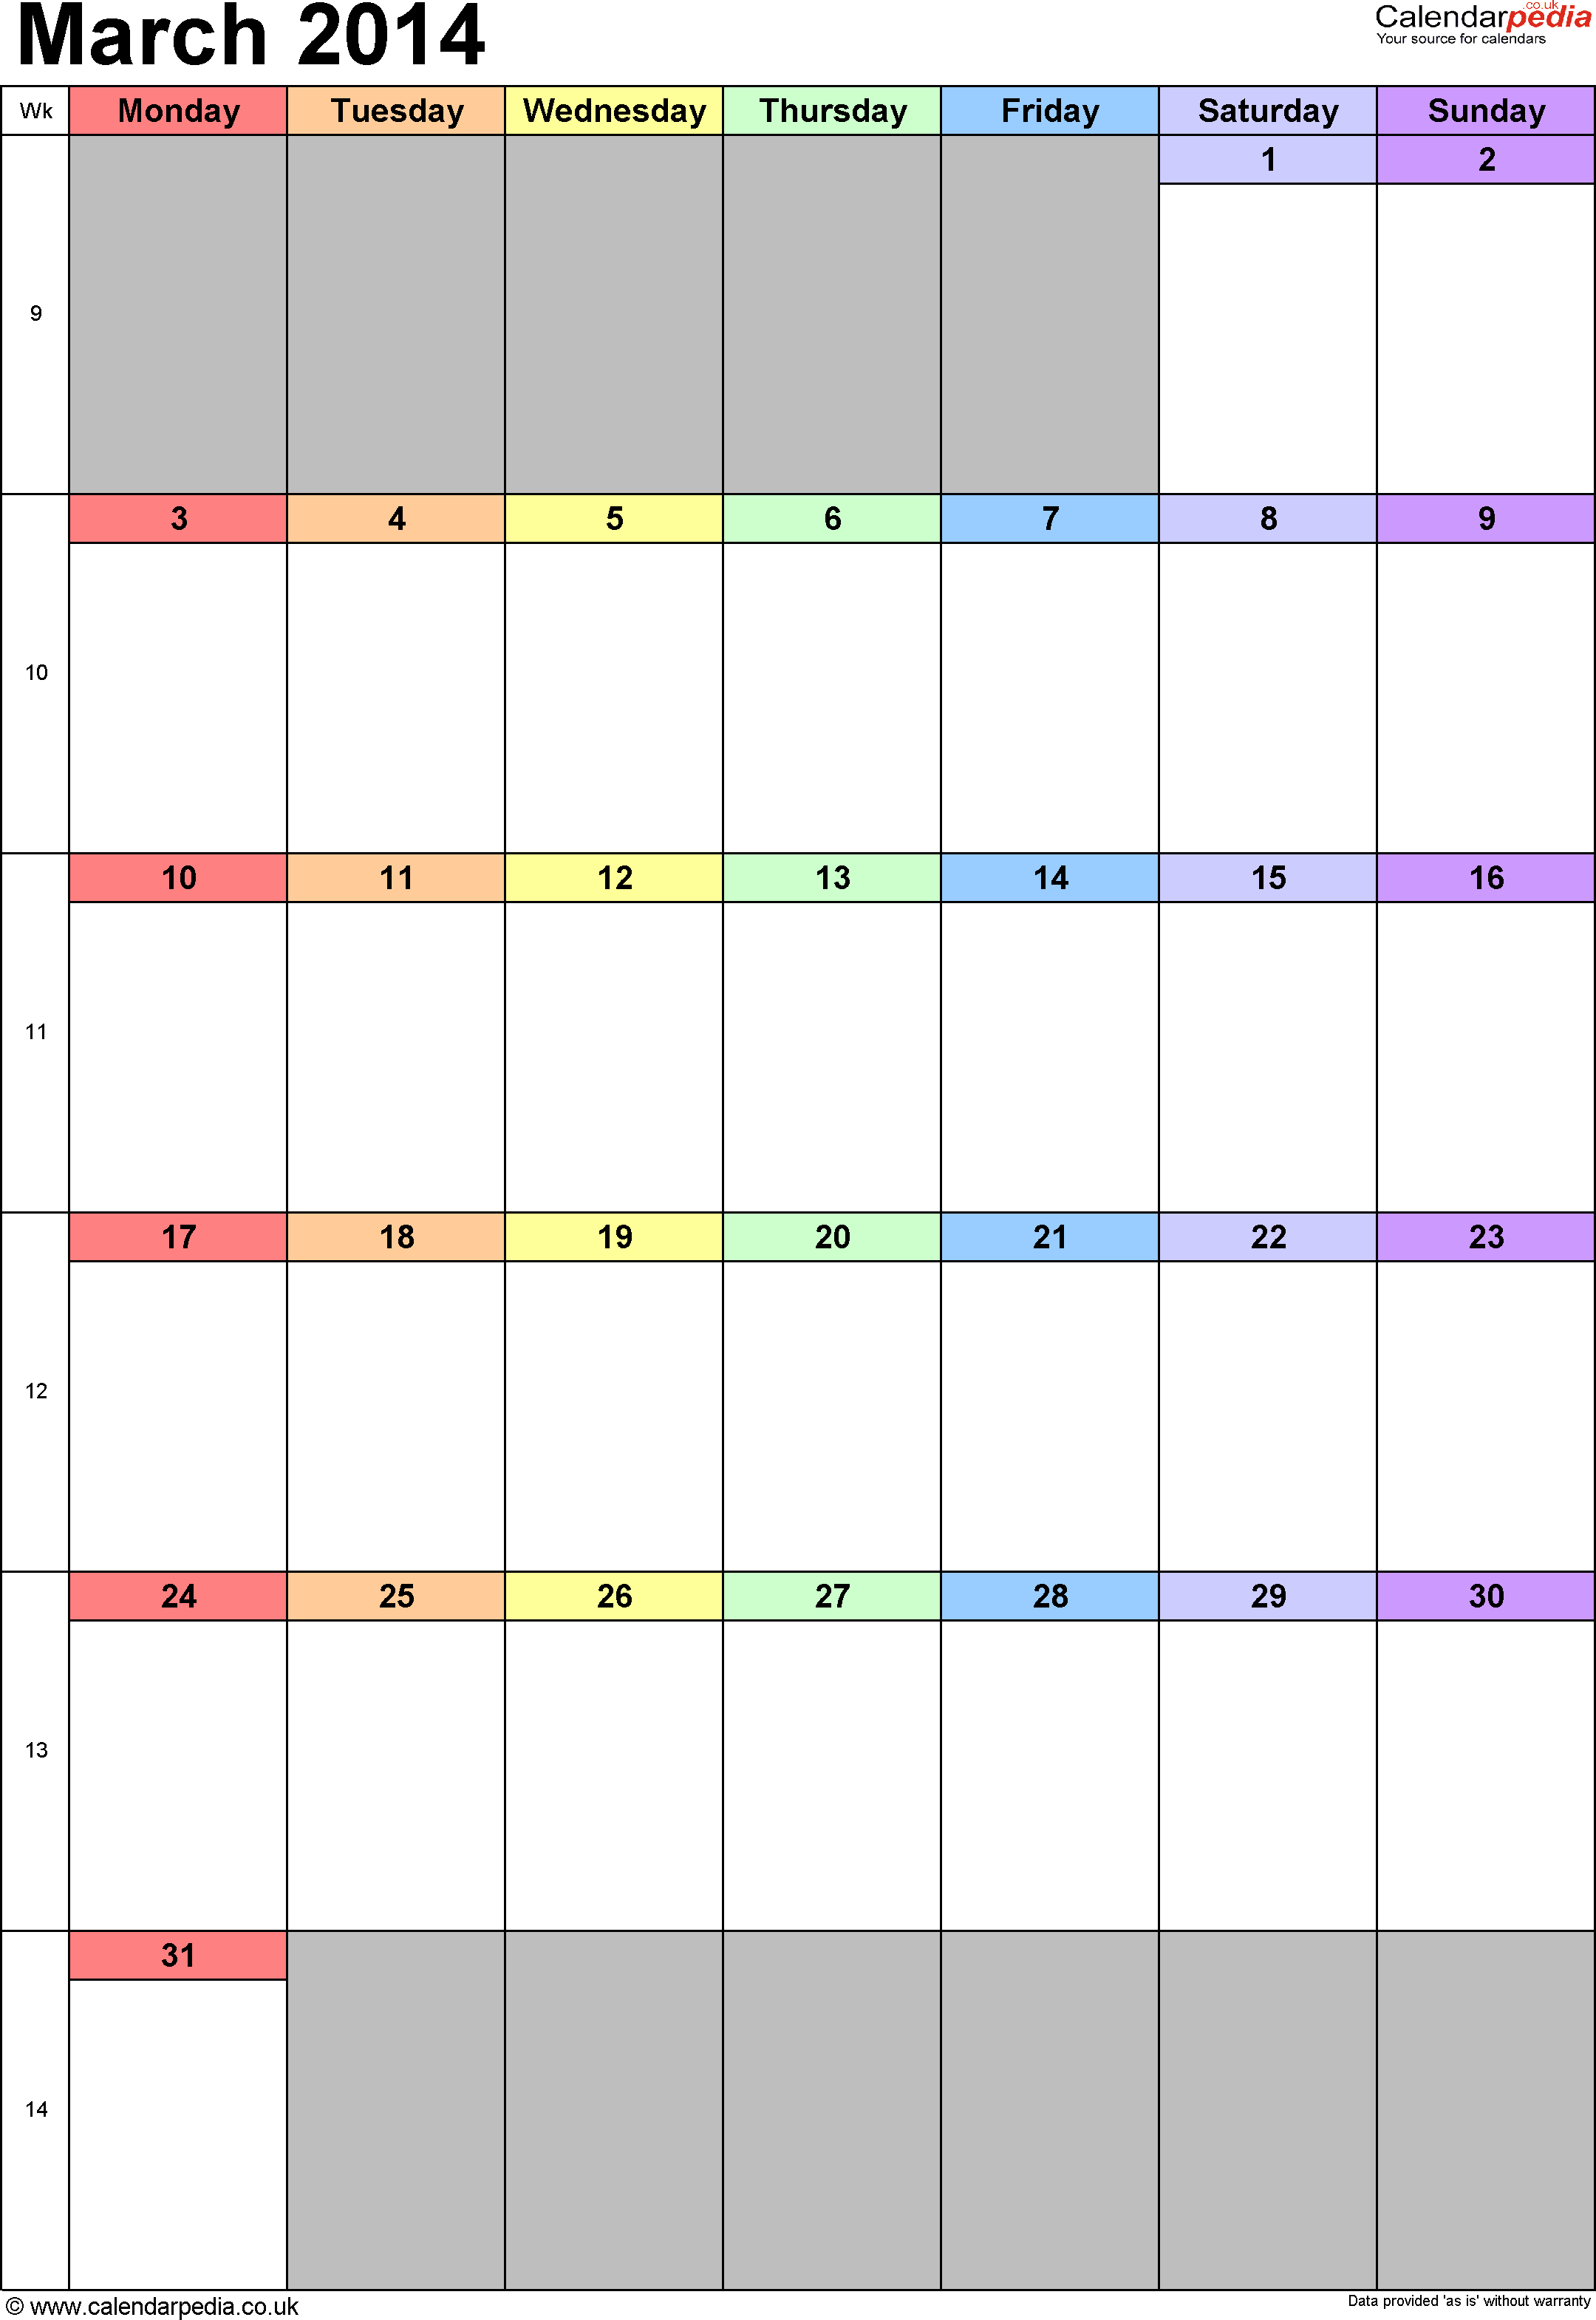 Calendar March 2014 portrait orientation, 1 page, with UK bank holidays and week numbers